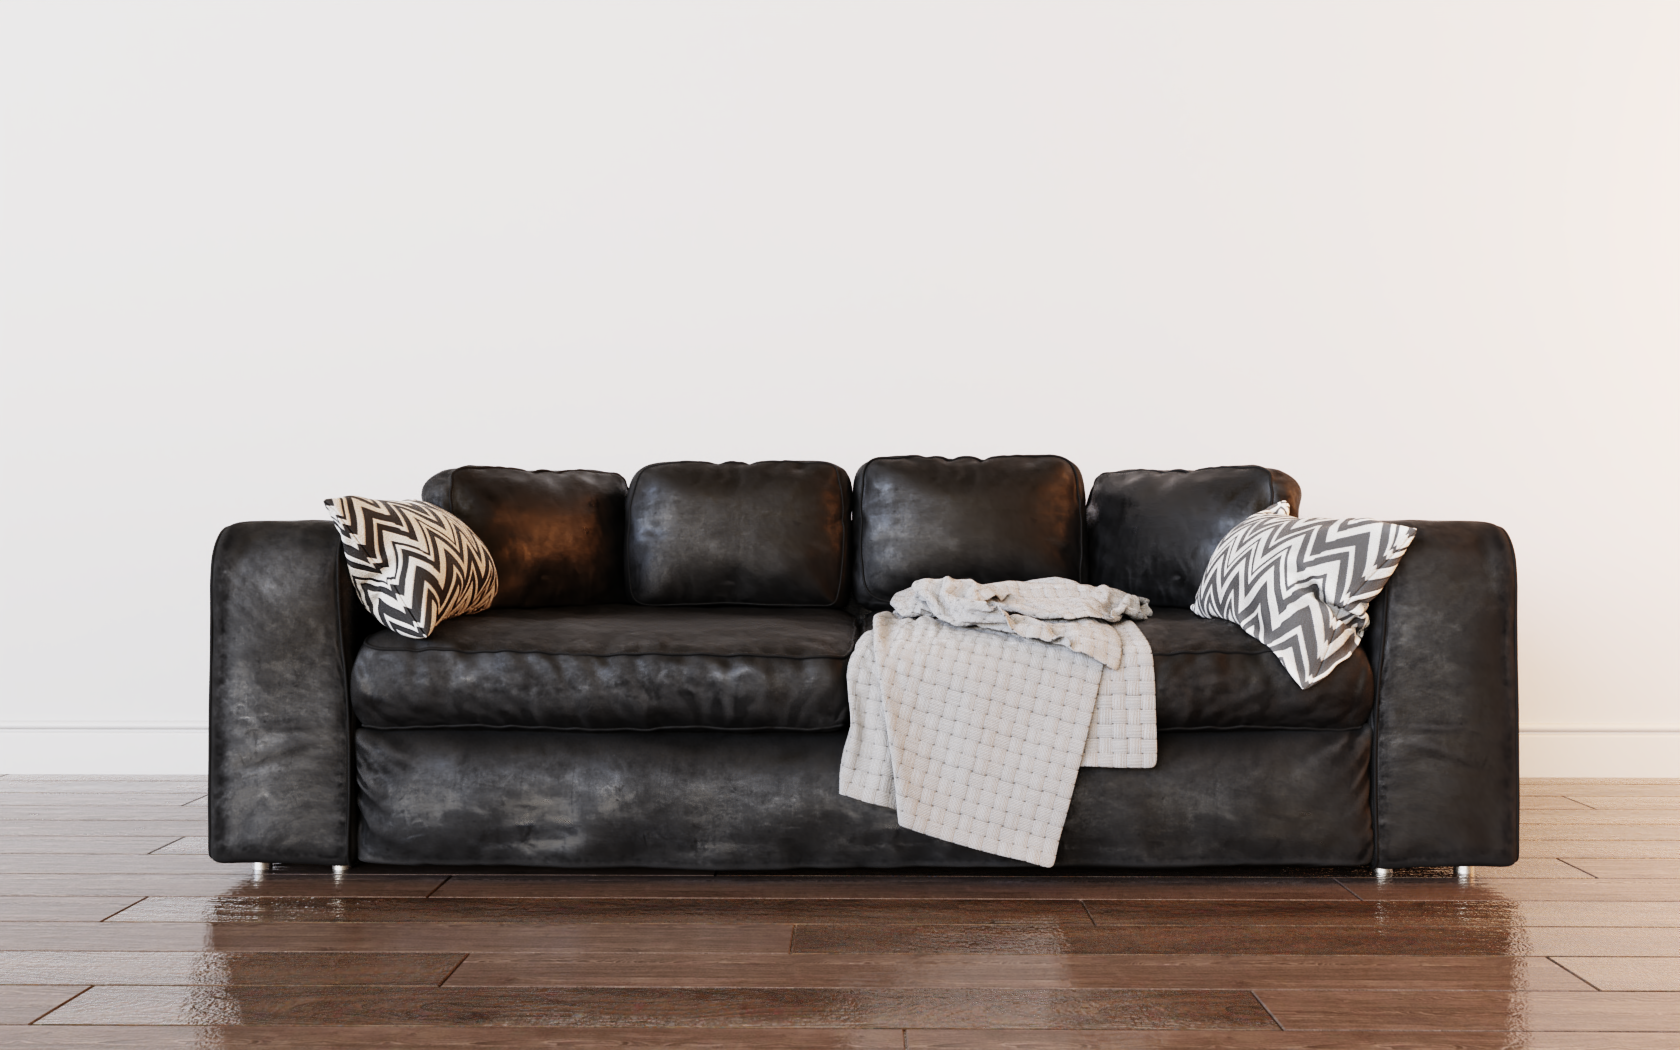 Leather Studio Sofa 3D model- EEVEE, Cycles preview image 3